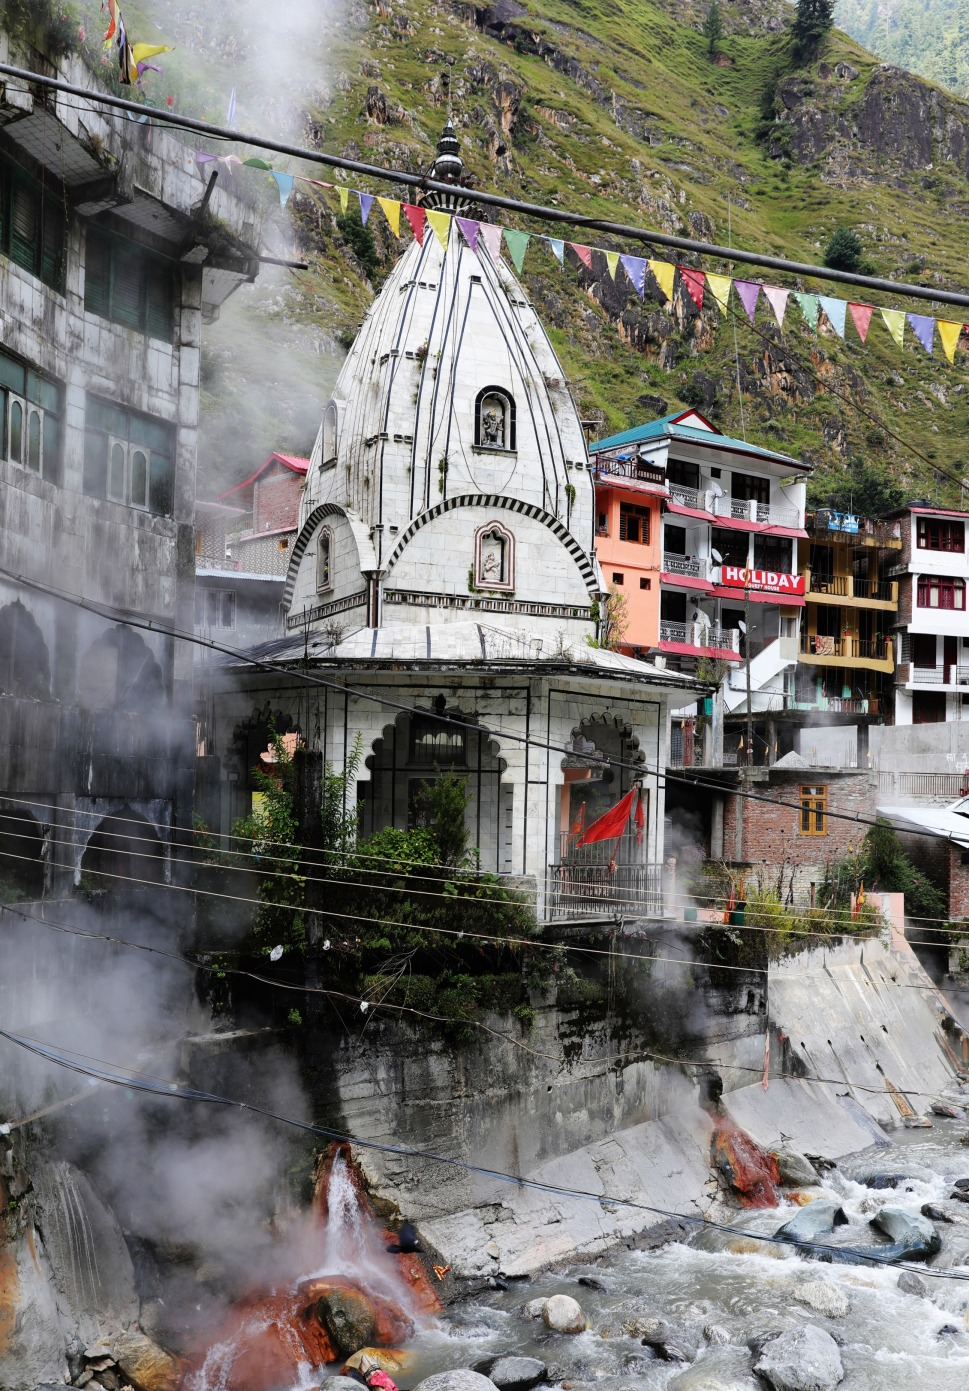 Hot springs steam rising beside the Hindu Temple, Manikaran